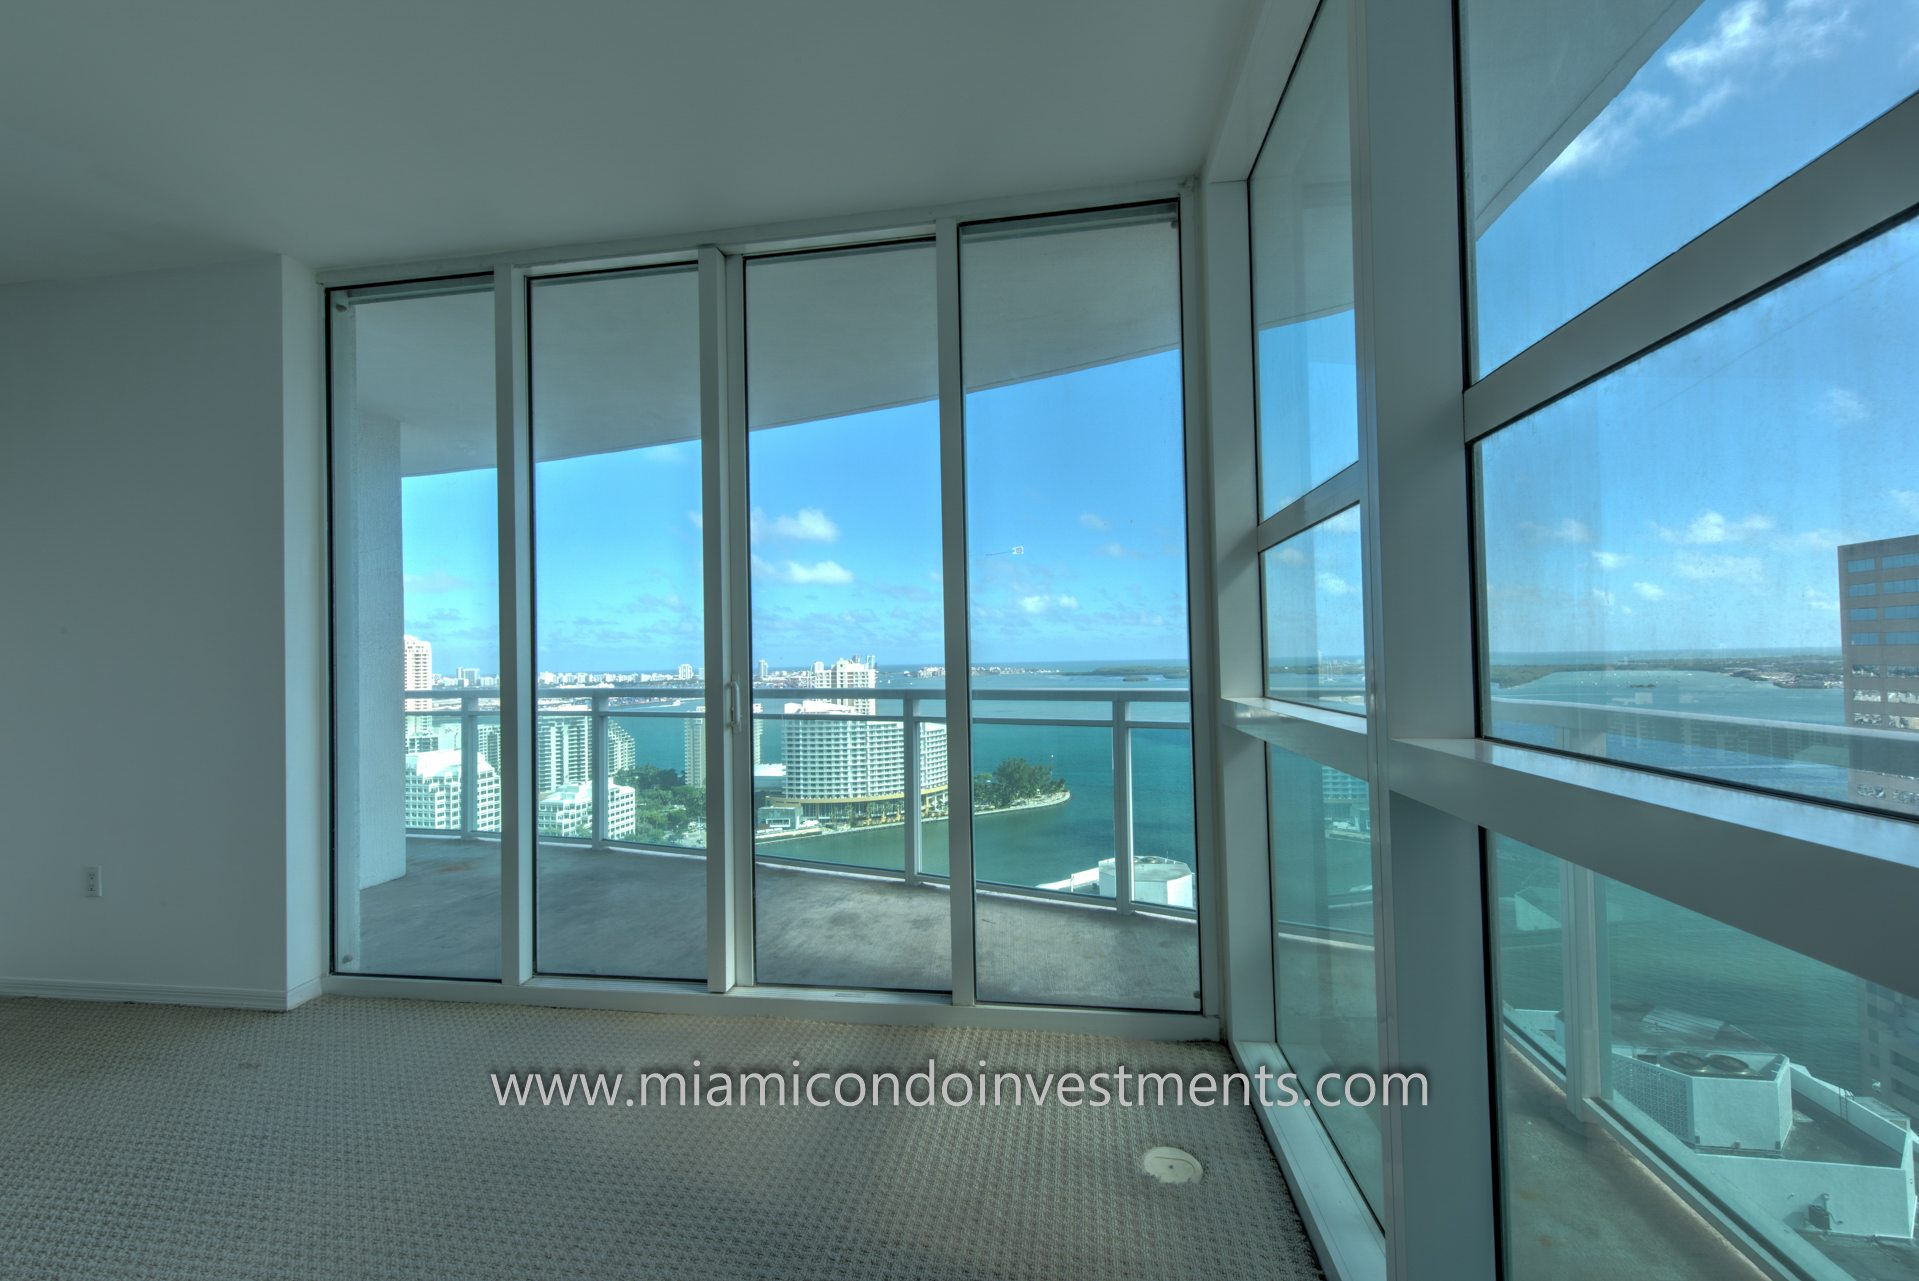 condo views brickell miami